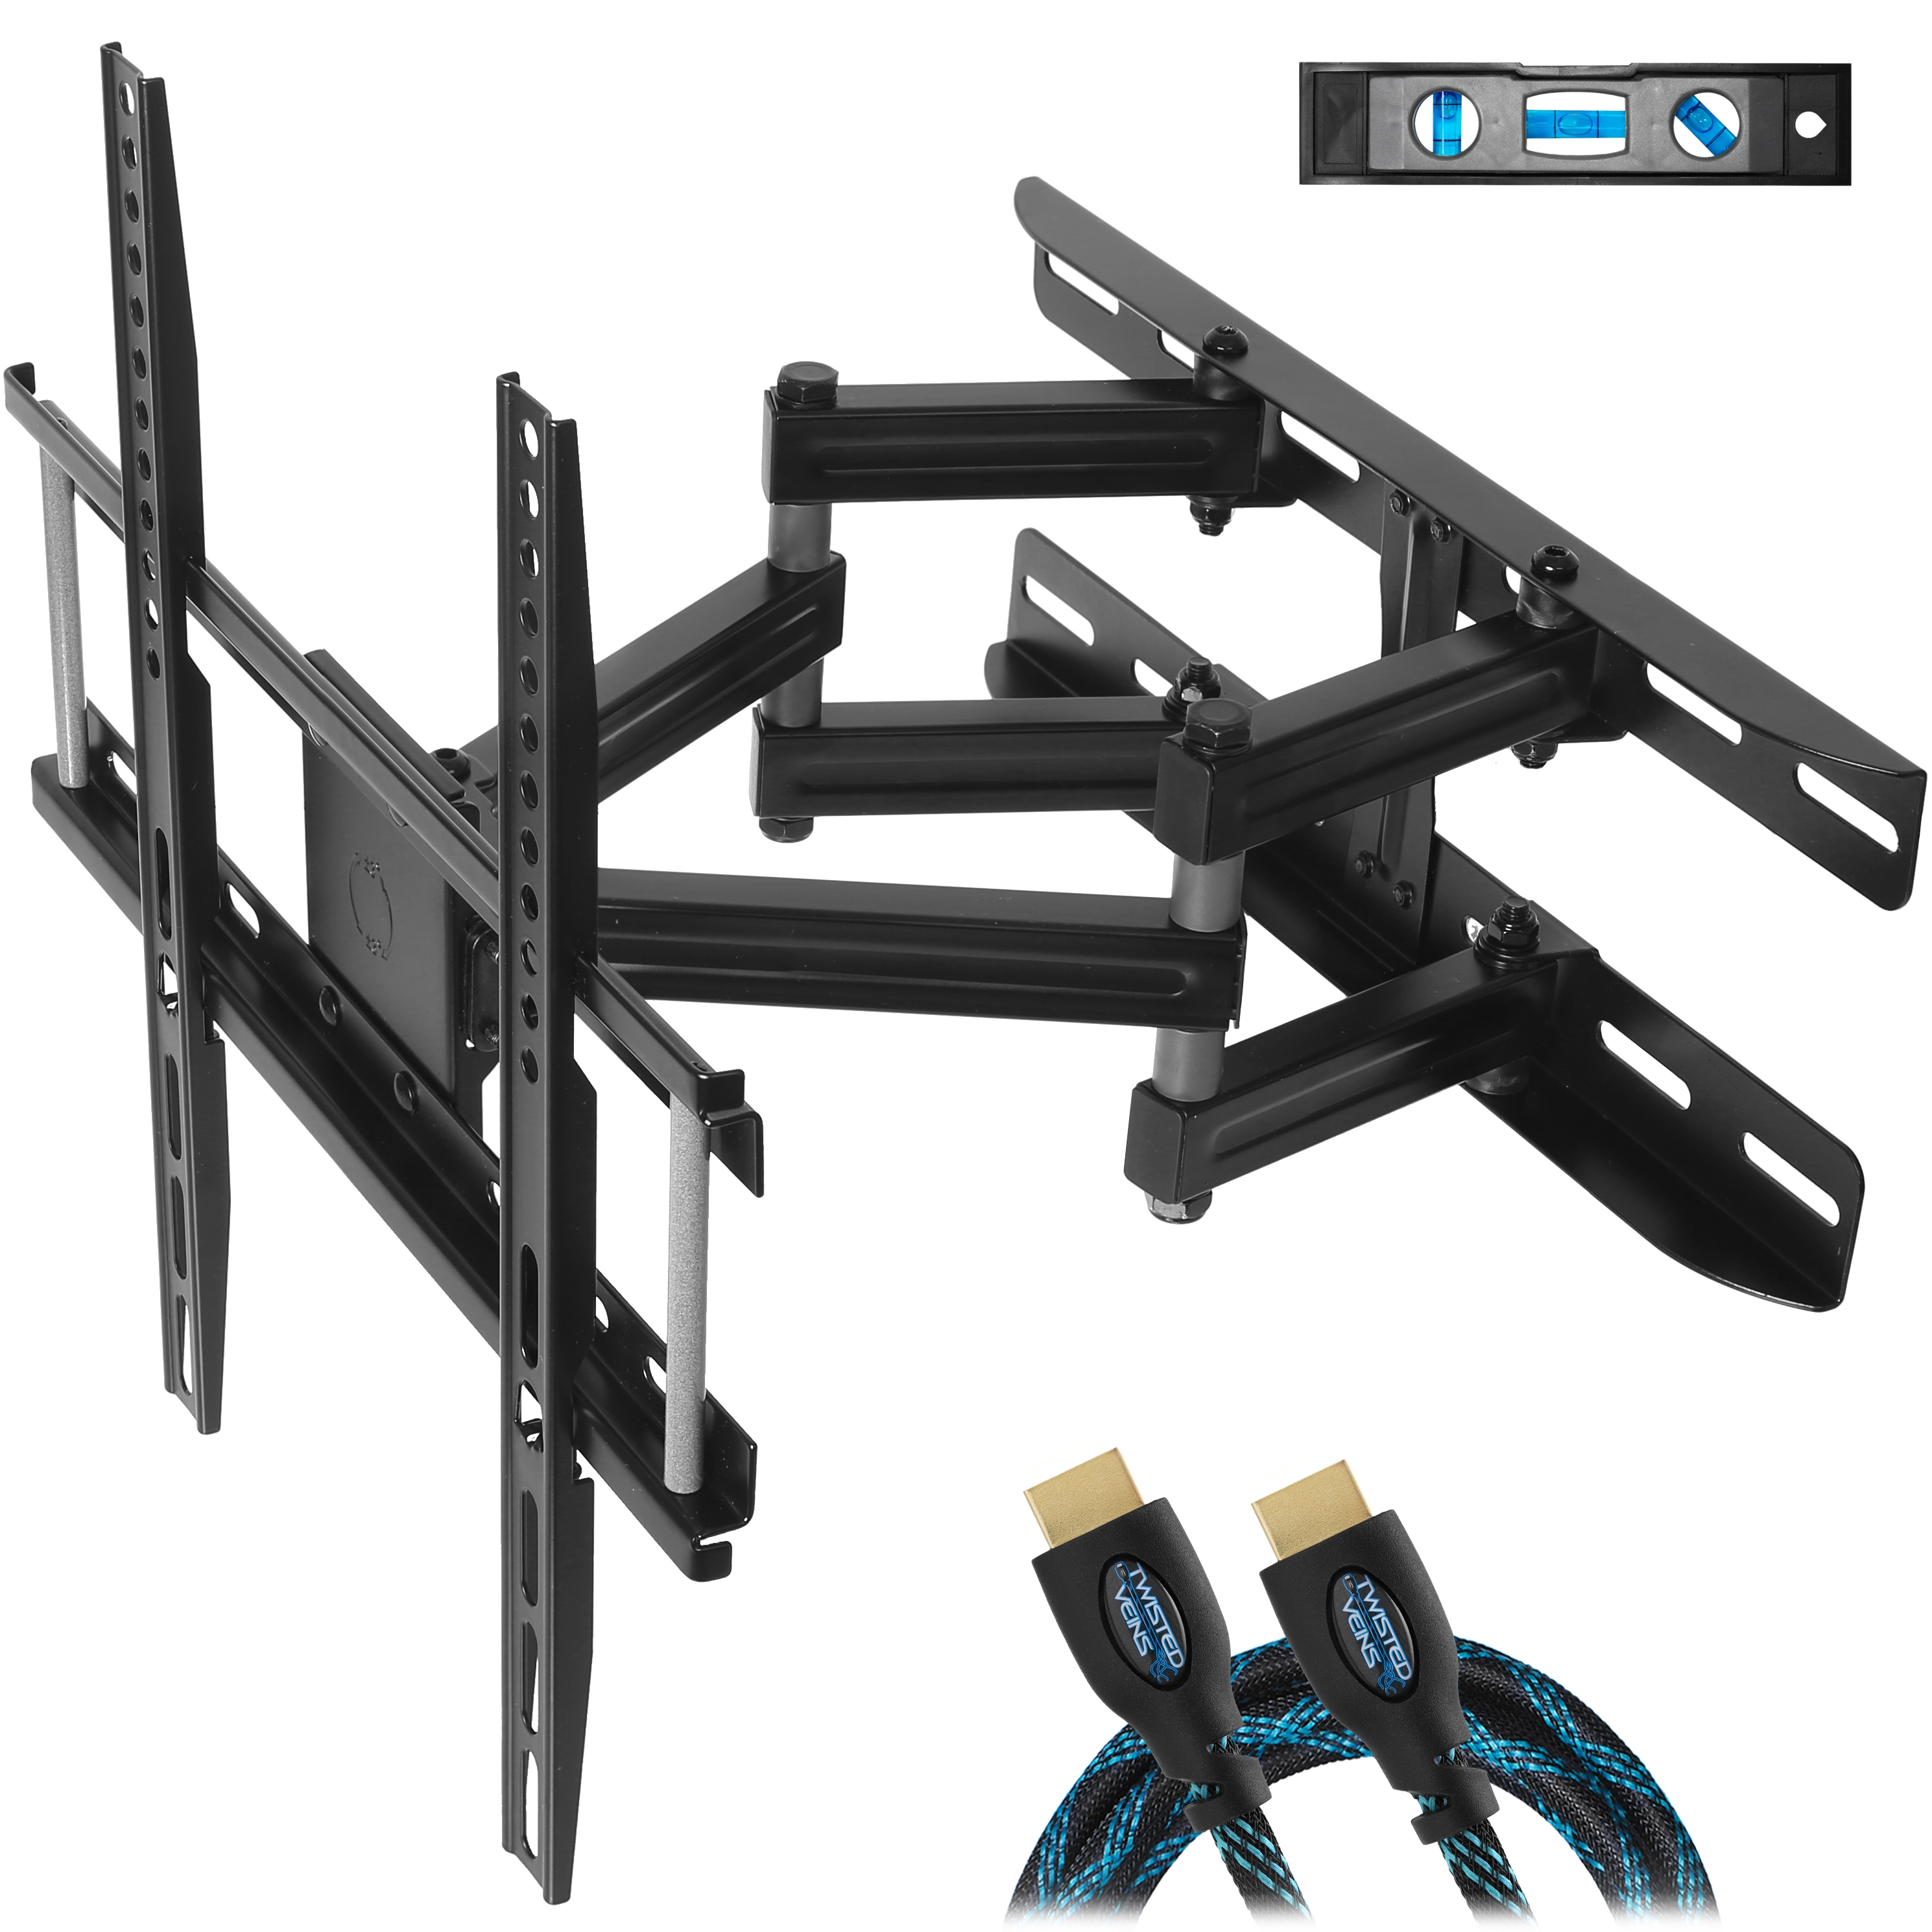 cheetah mounts dual articulating arm tv wall mount bracket for 20 65 tvs up